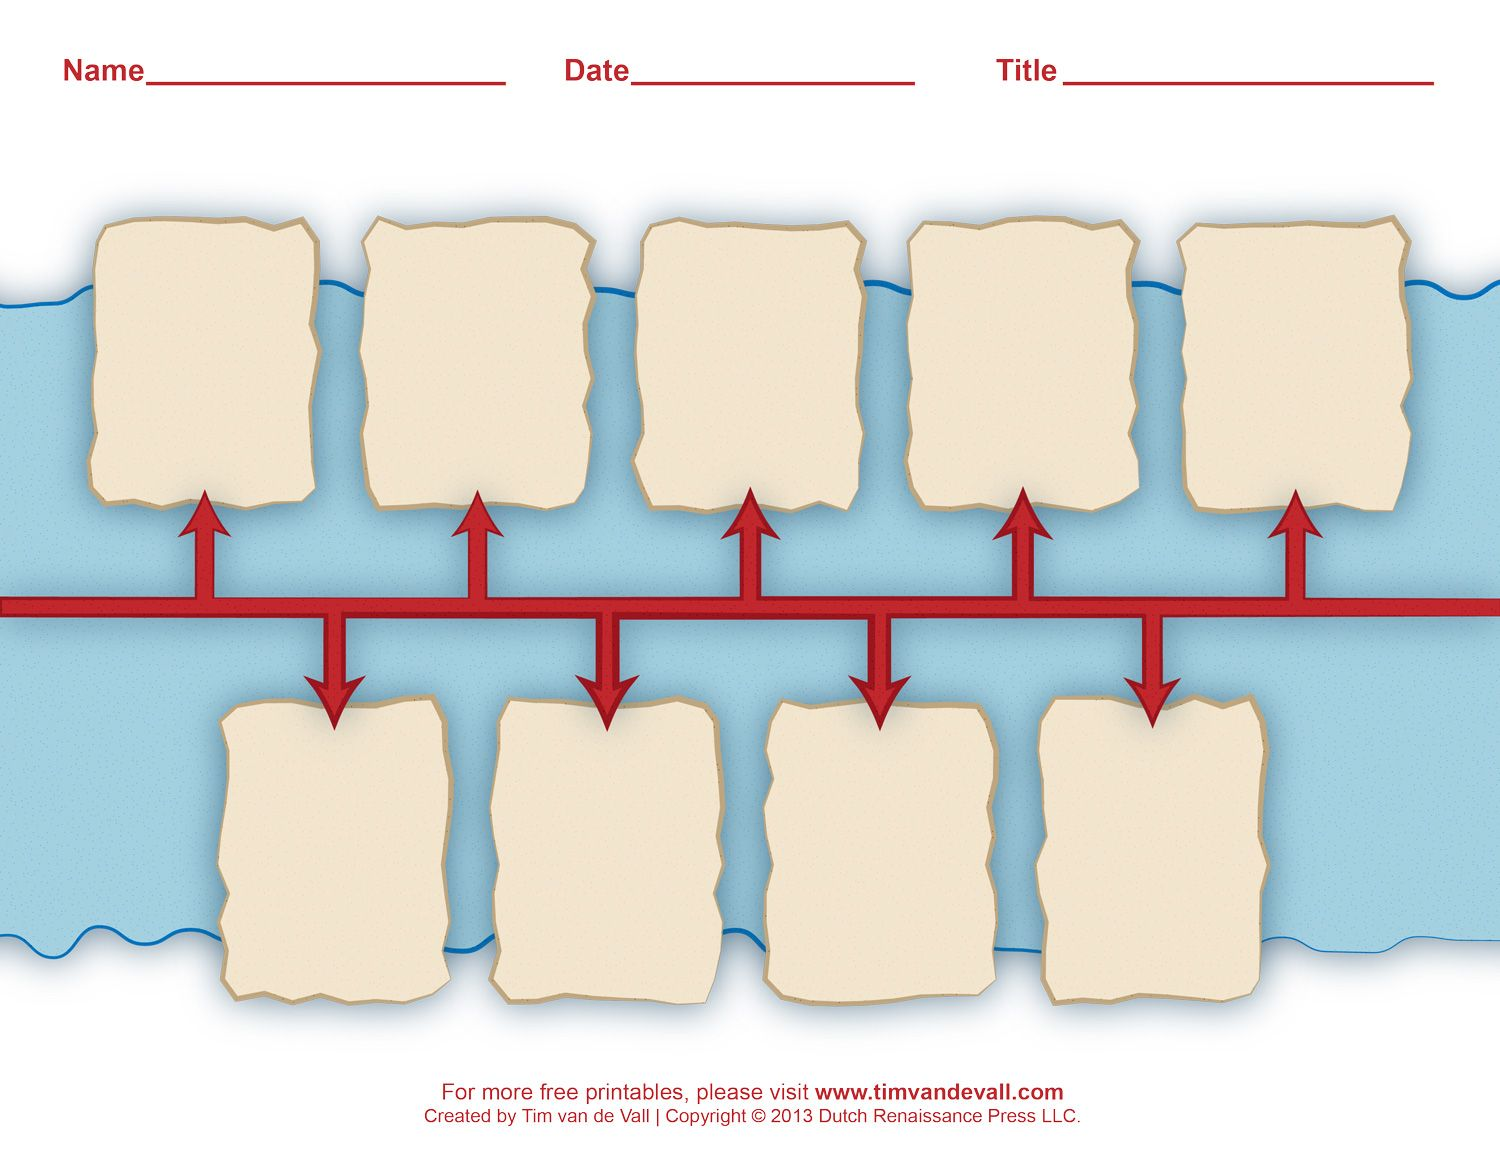 Blank Timeline Worksheet Photos - Newpcairport